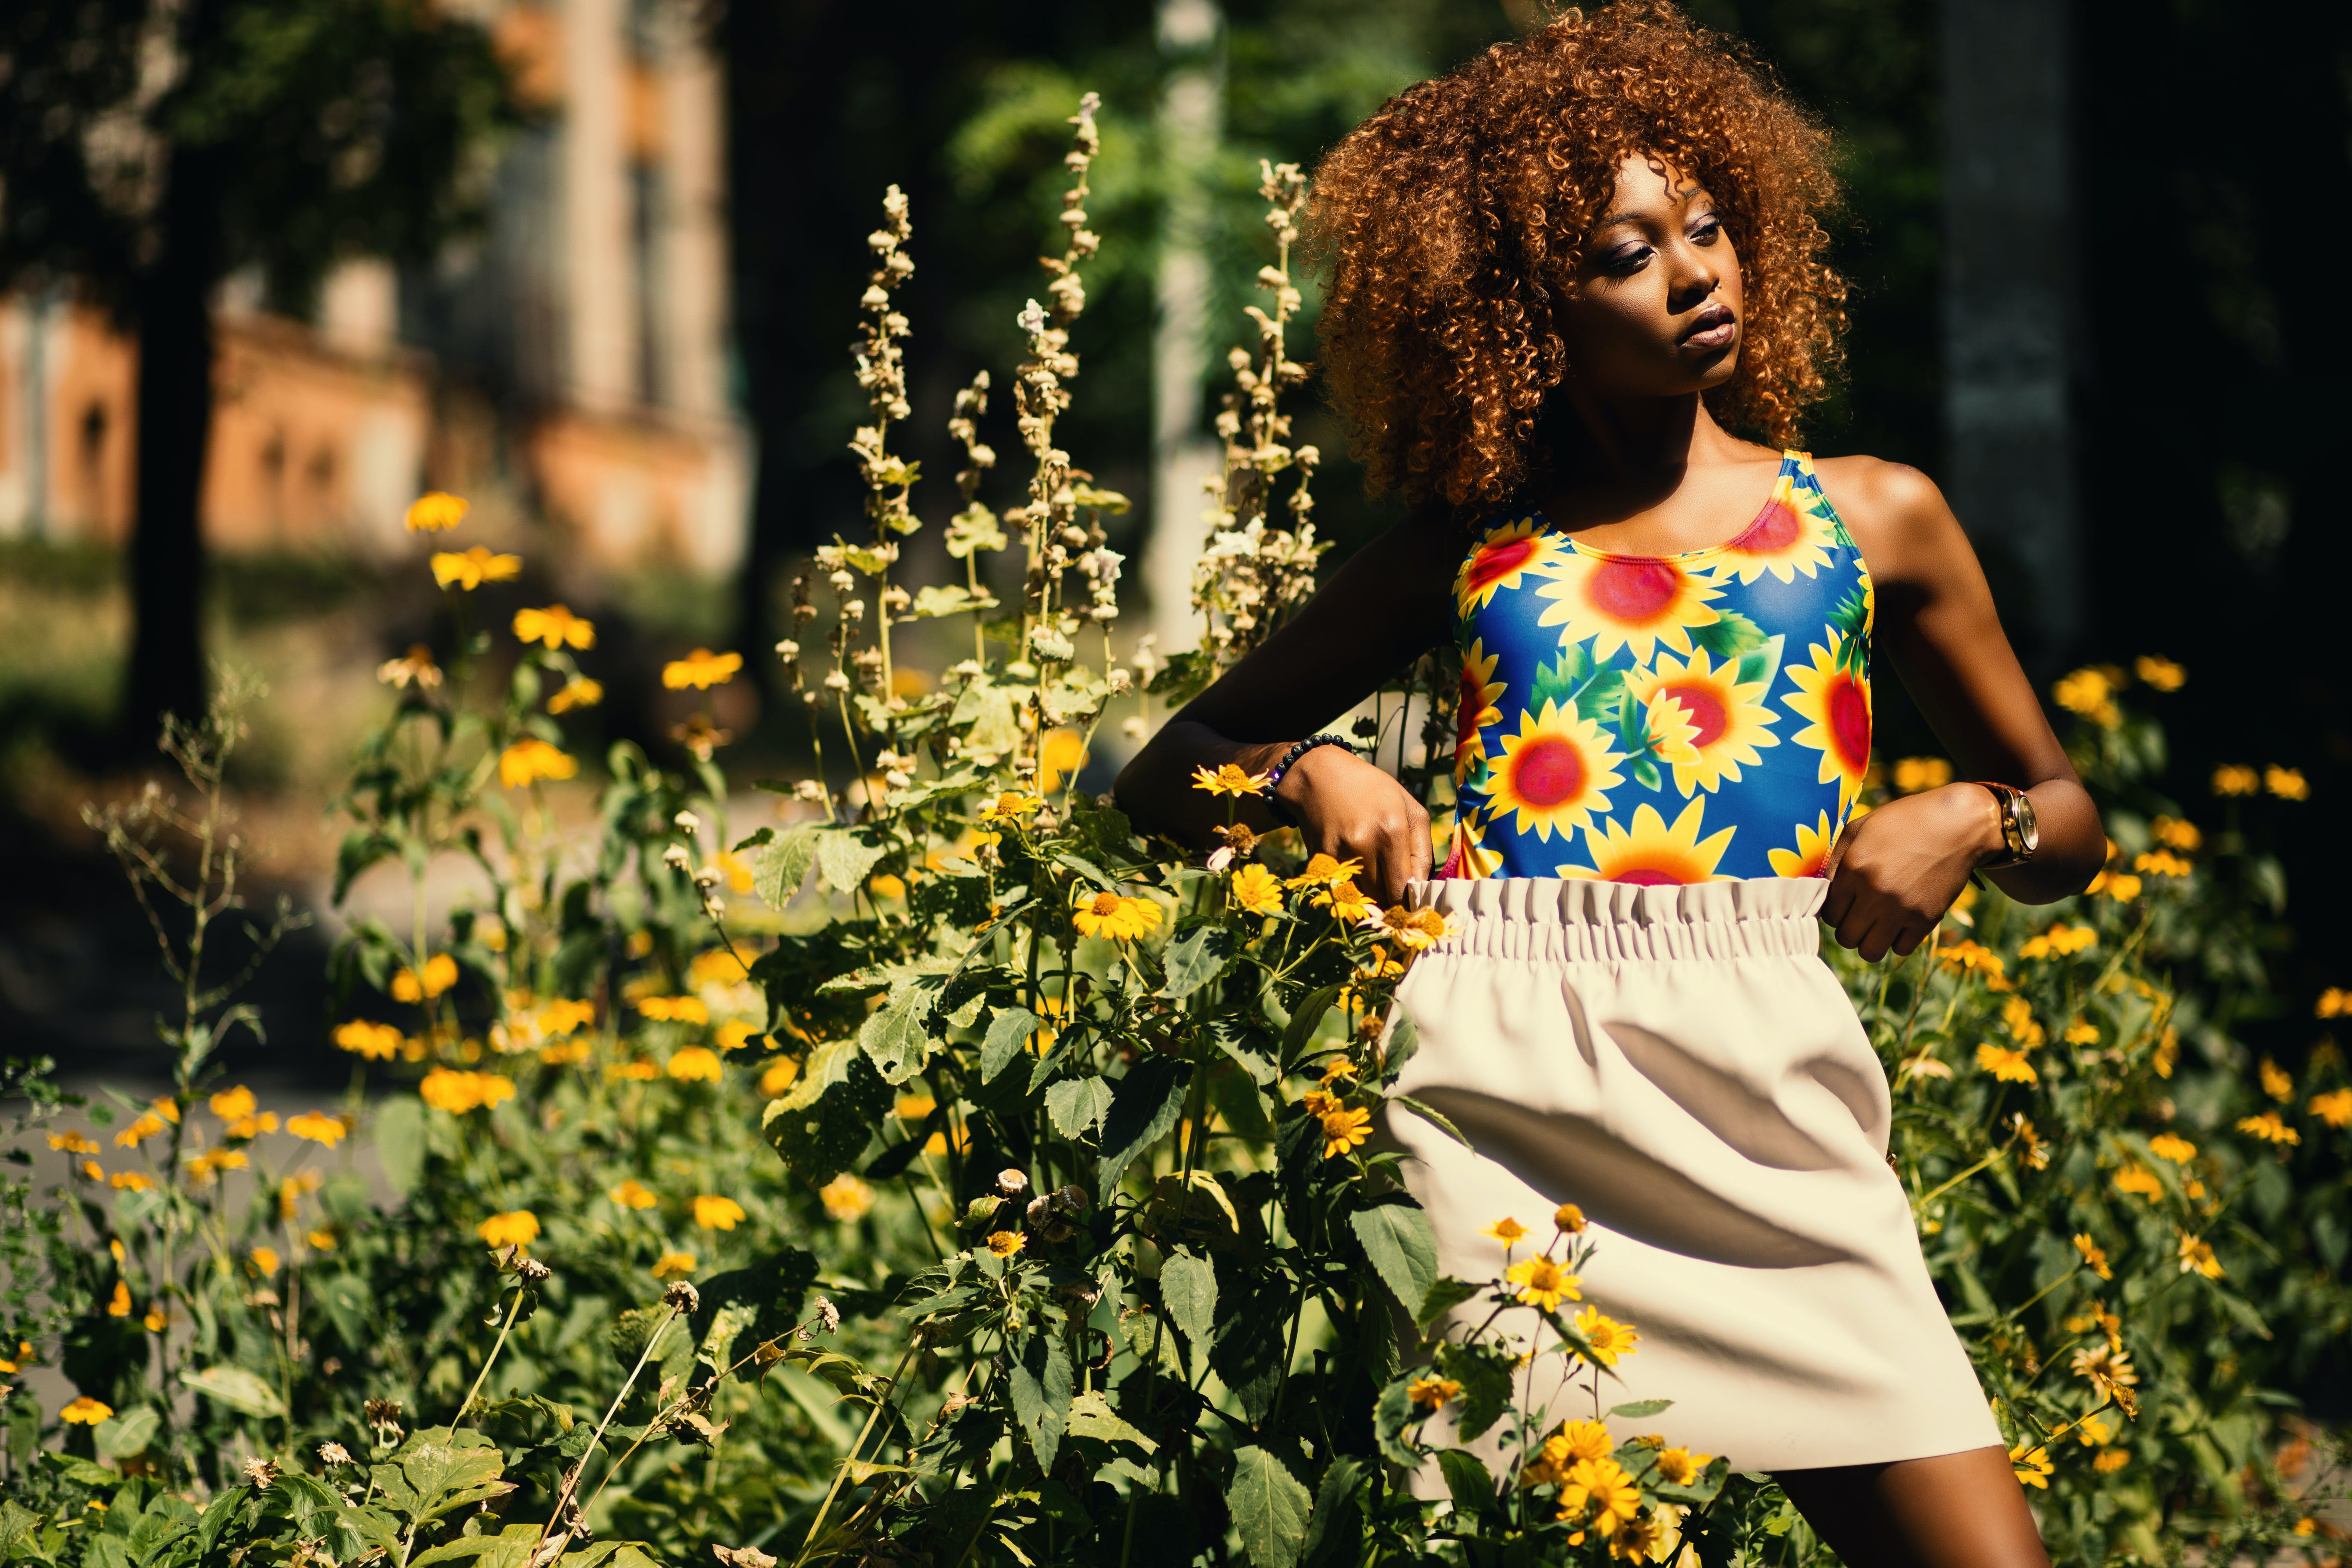 Photography of Woman Wearing Blue, Yellow and Red Floral Tank Top Standing